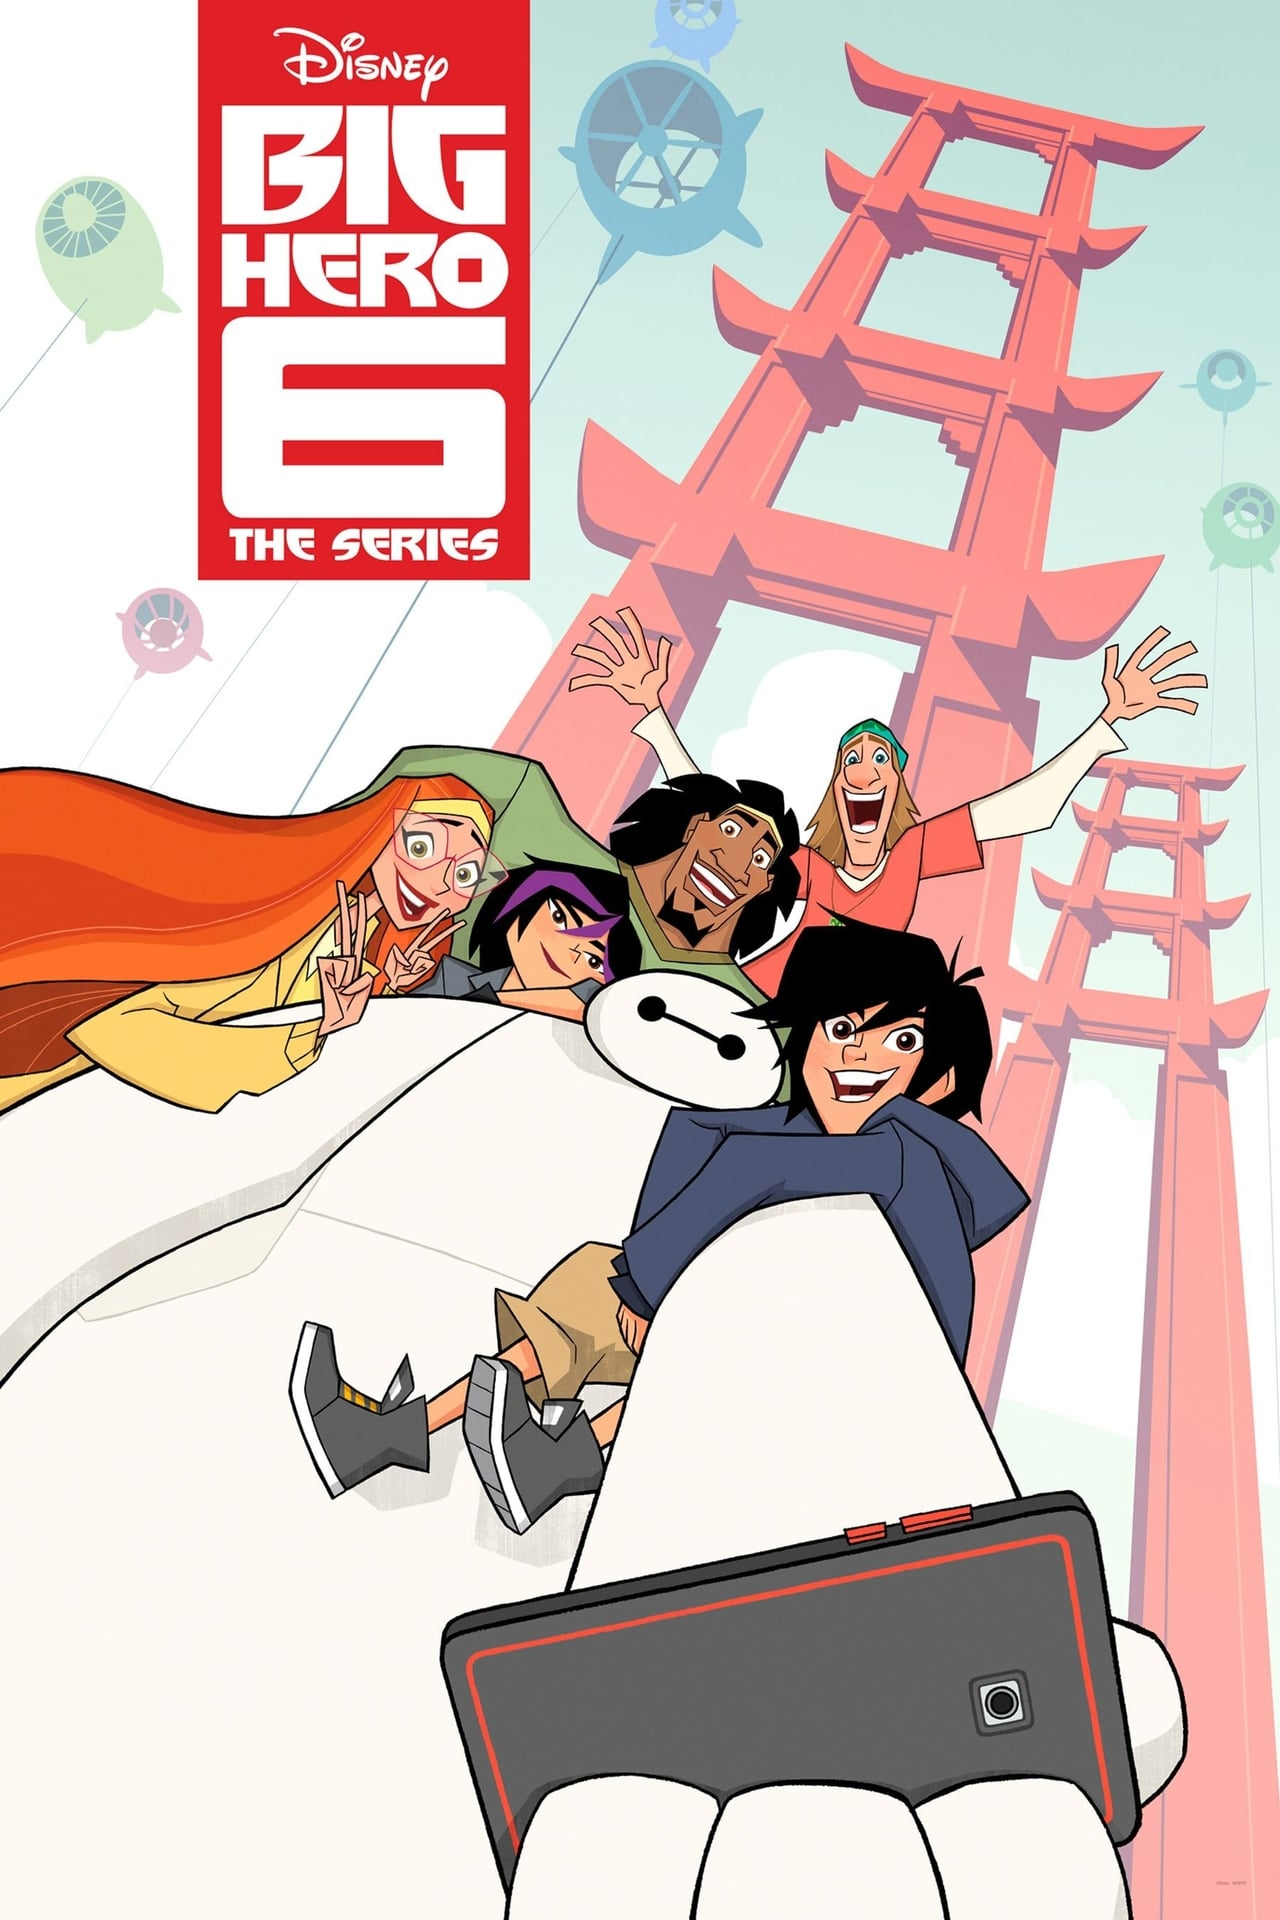 Big Hero 6 The Series Season 1 (2017) putlockers cafe